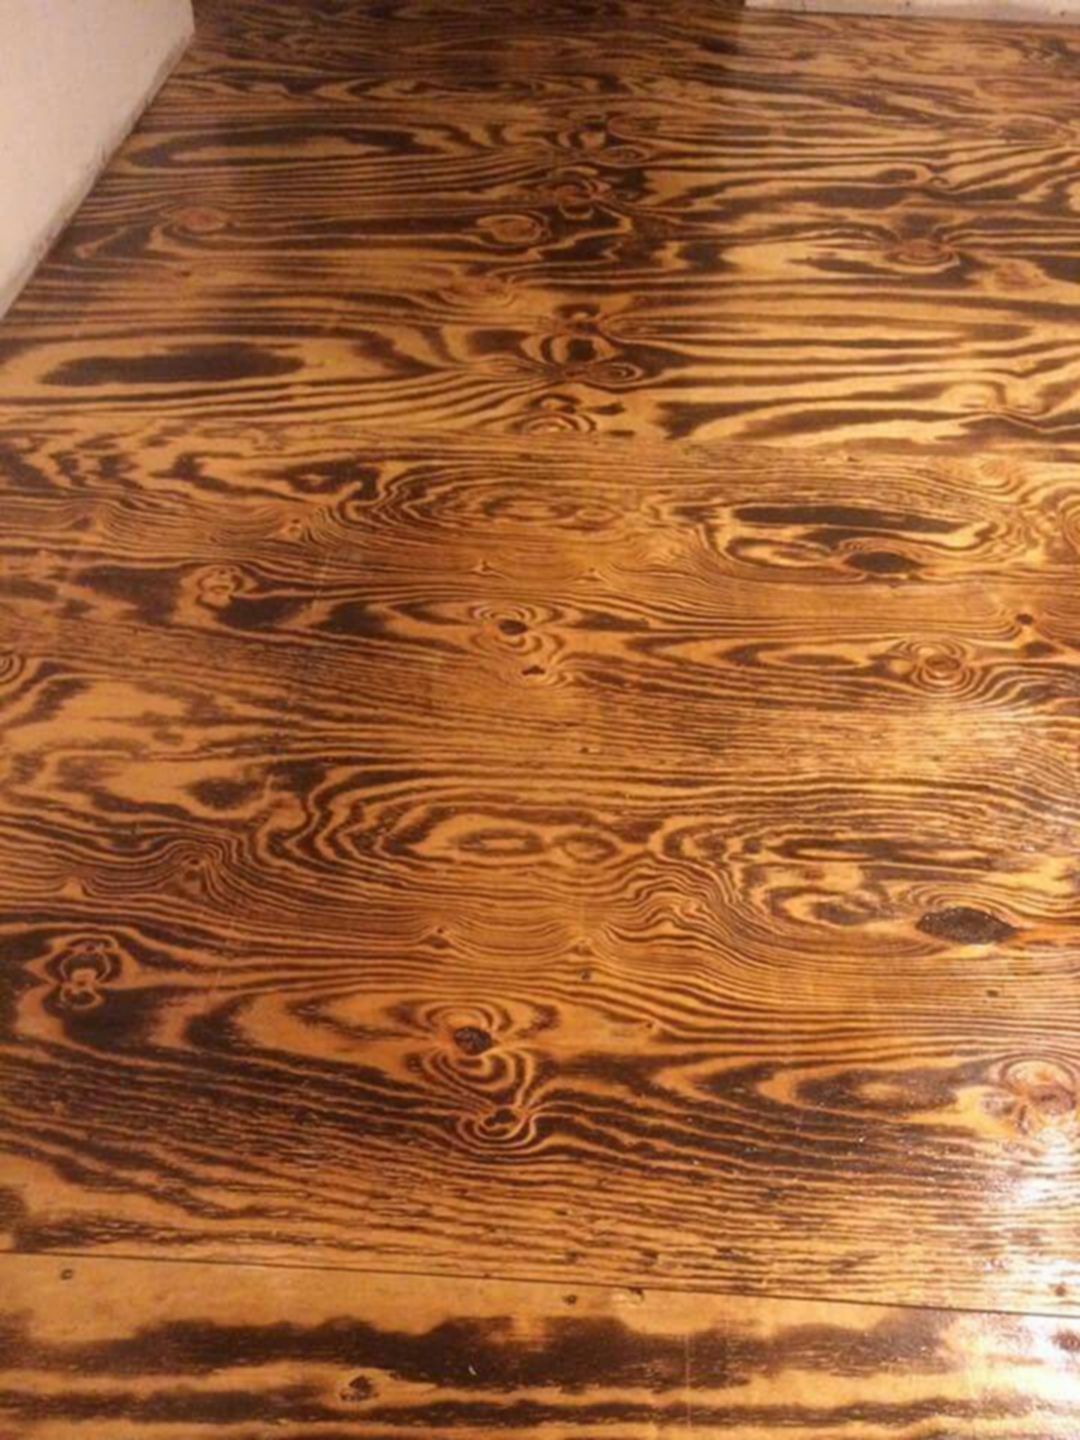 20 Amazing Ideas To Make Your Home Floor Be More Elegant With Burnt Wood Diy Flooring Plywood Flooring Diy Plywood Flooring